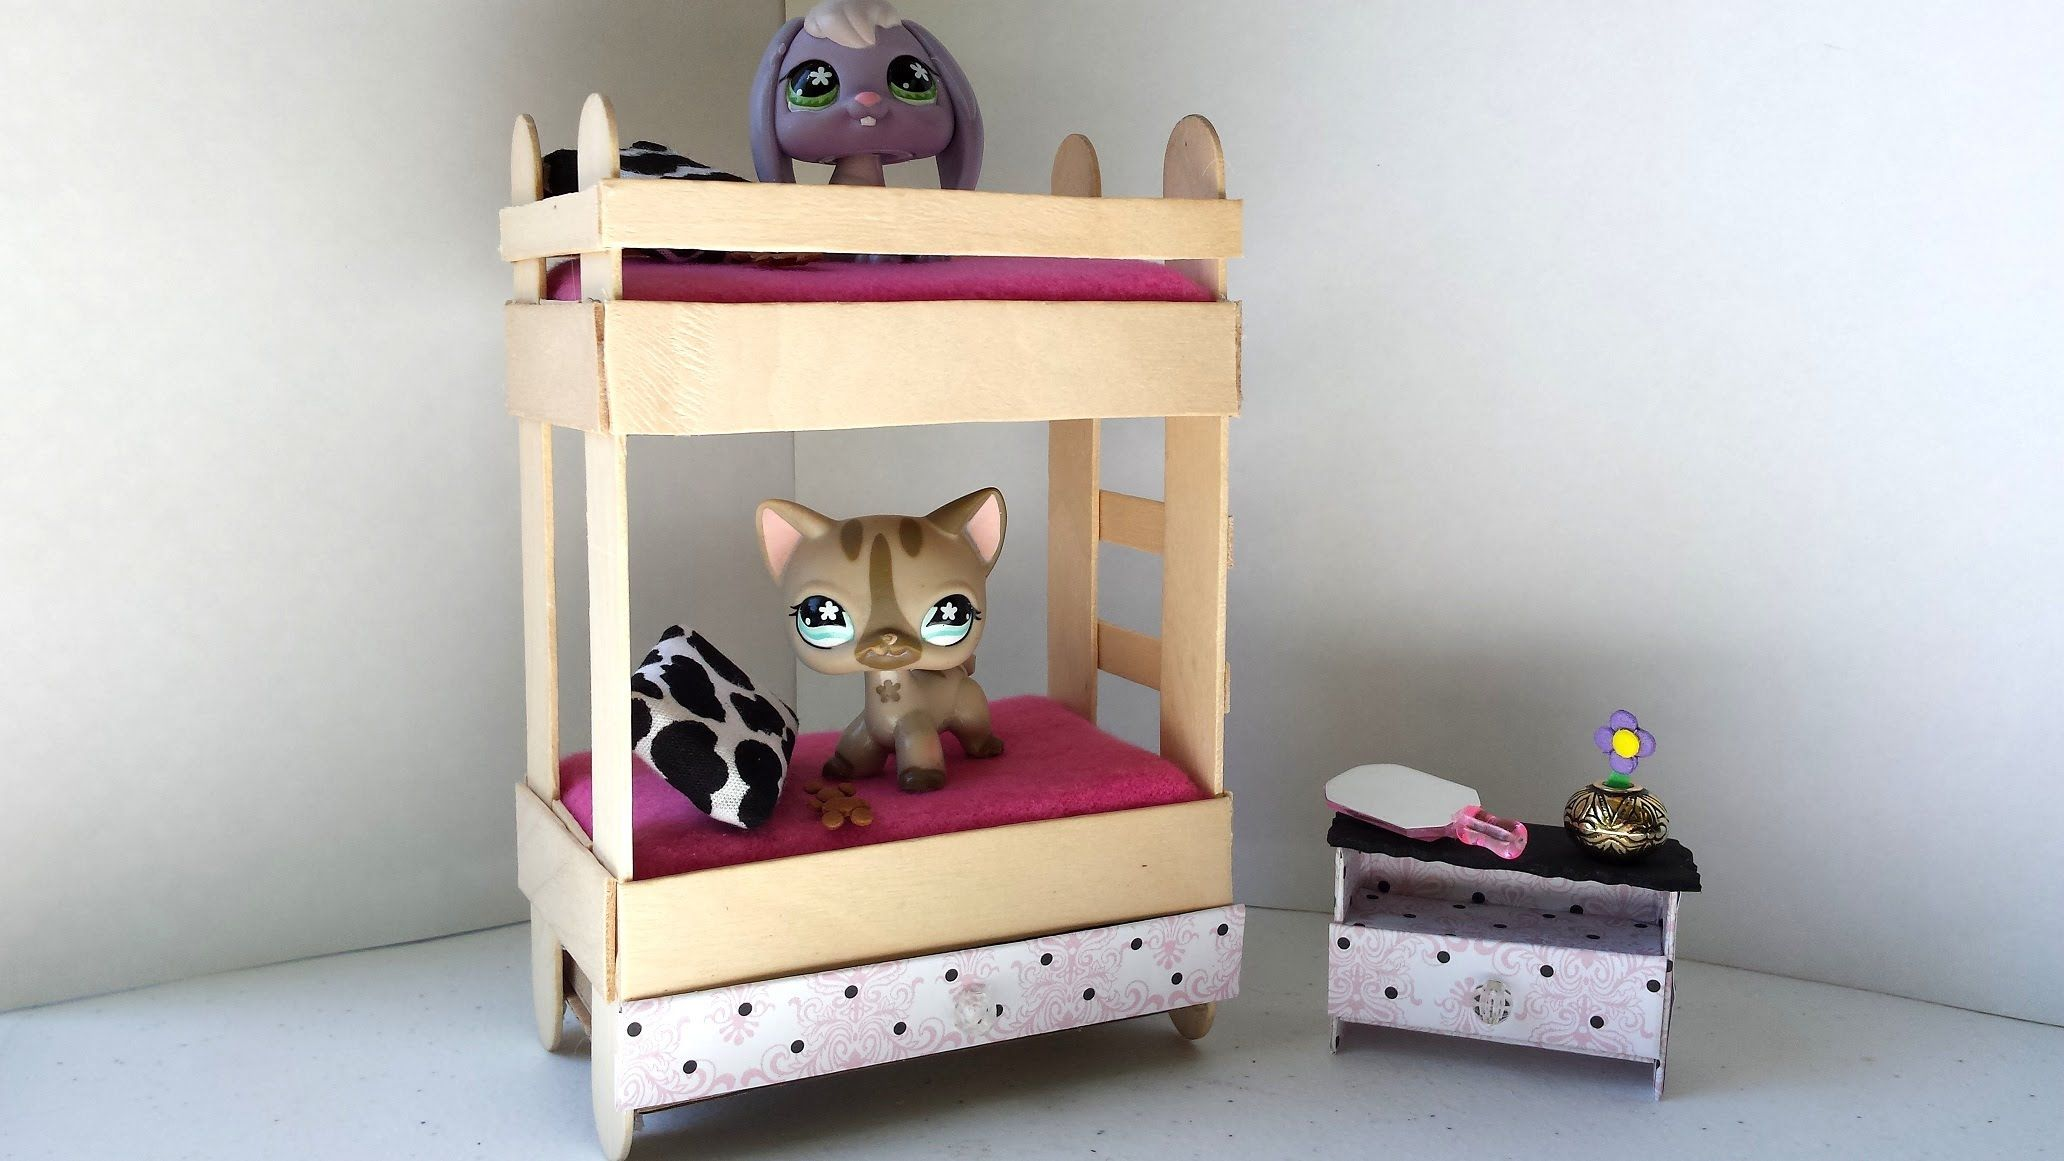 How To Make A Tiny Bunk Bed With Drawer For Lps Littlest Pet Doll